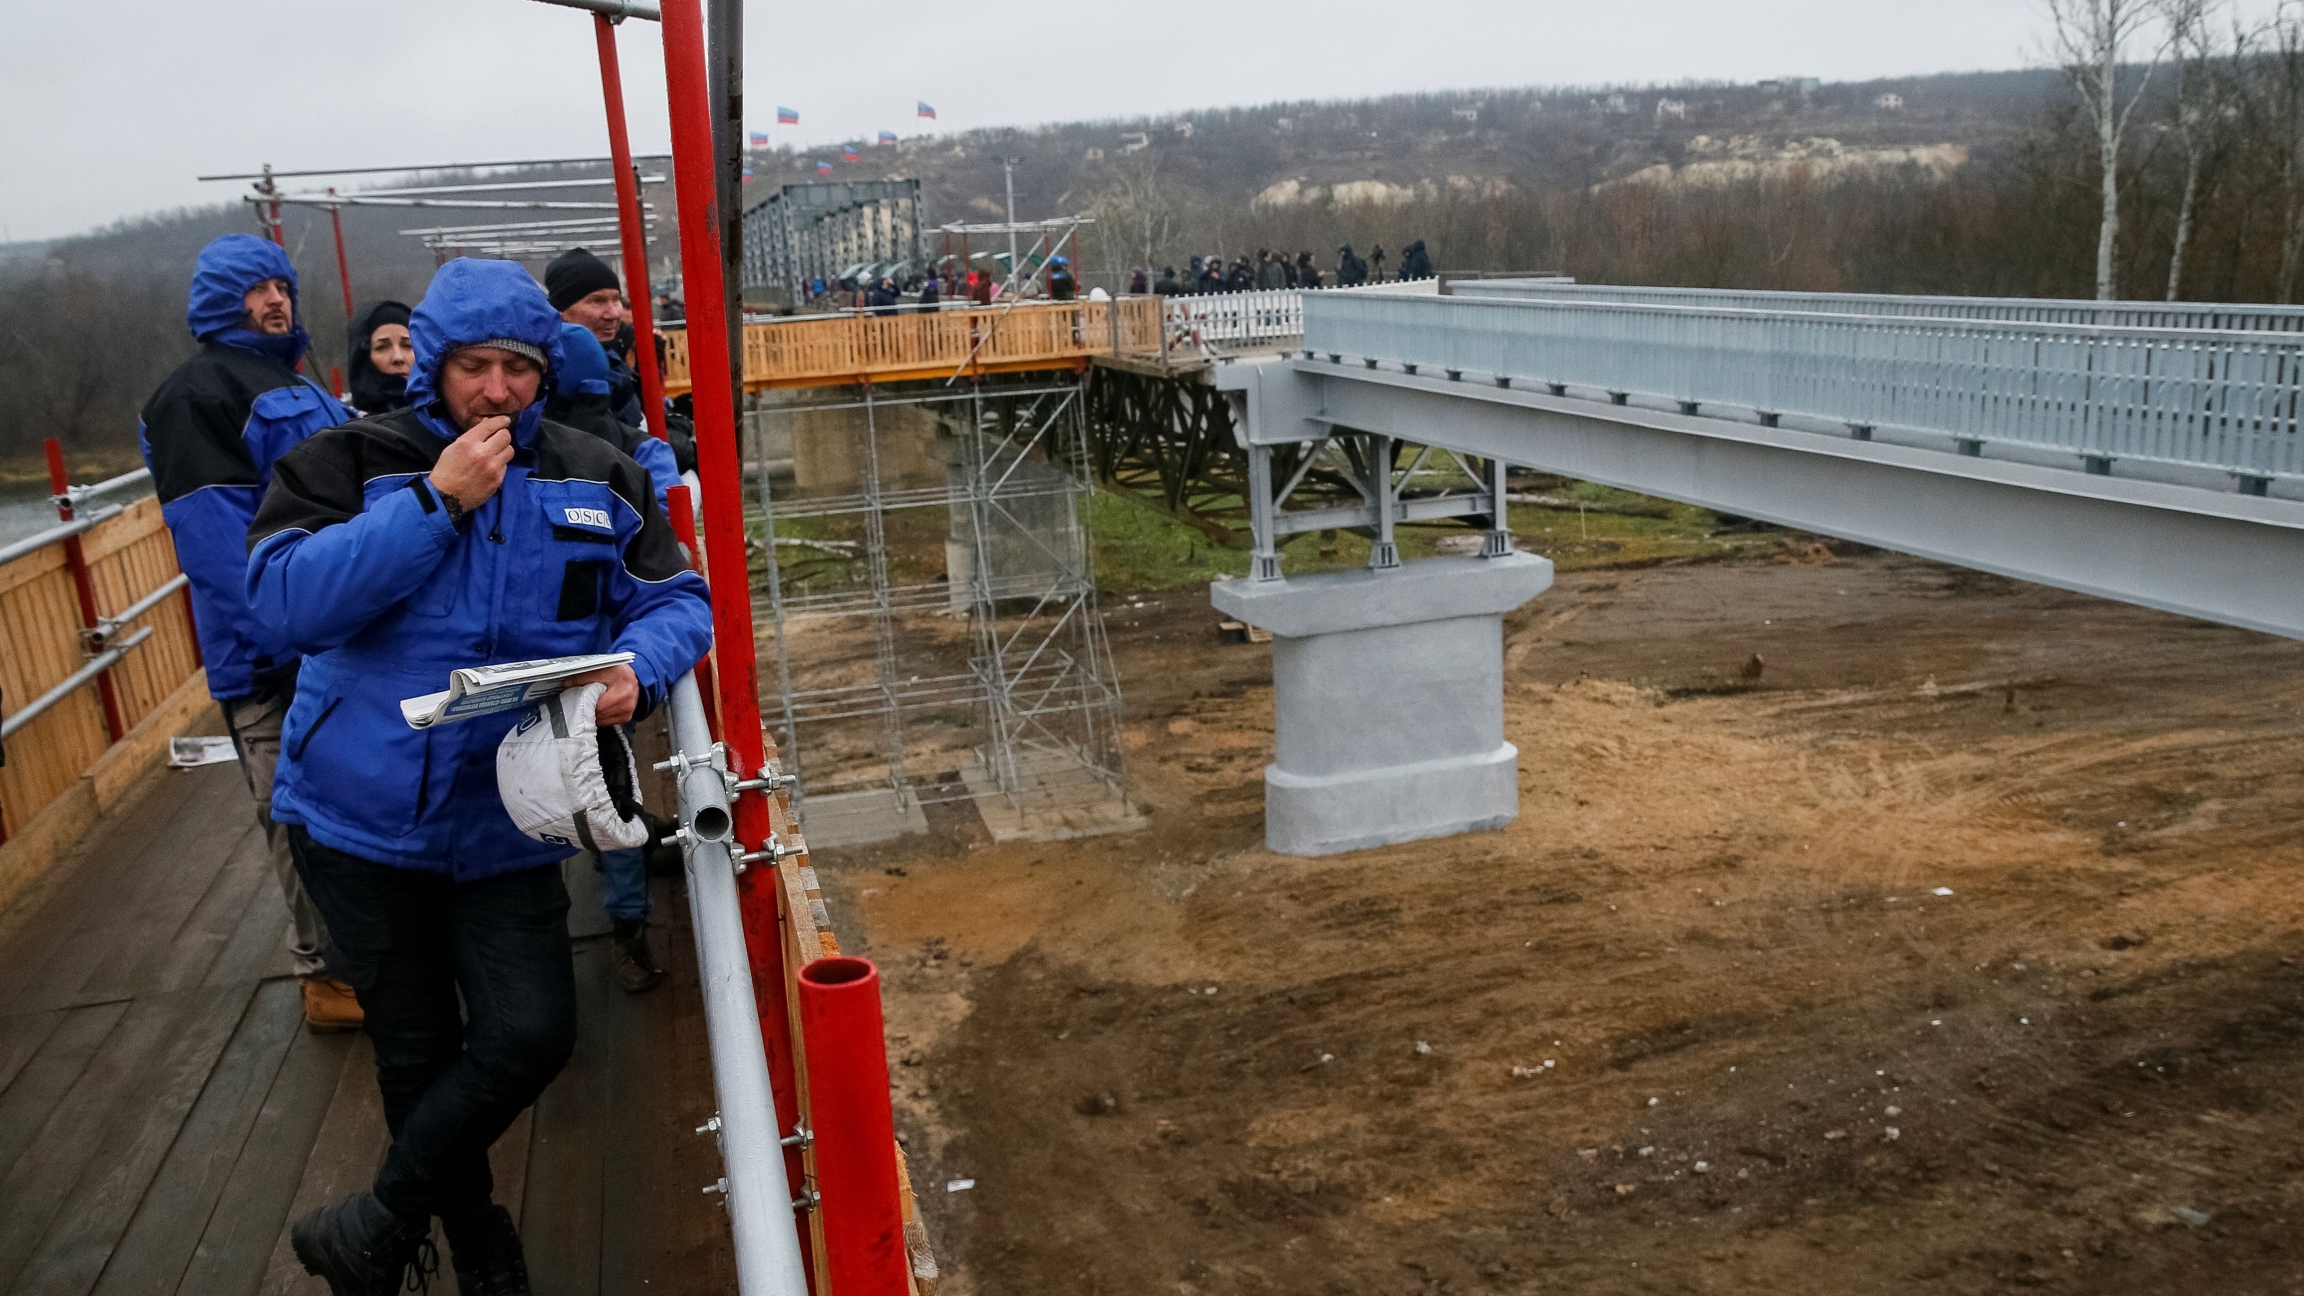 Members ofOrganizationforSecurityandCooperationinEurope(OSCE) look on as they visit a section of the restored bridge, which was blown up during a military conflict between Ukrainian government forces and Russian-backed rebels, in the settlement of